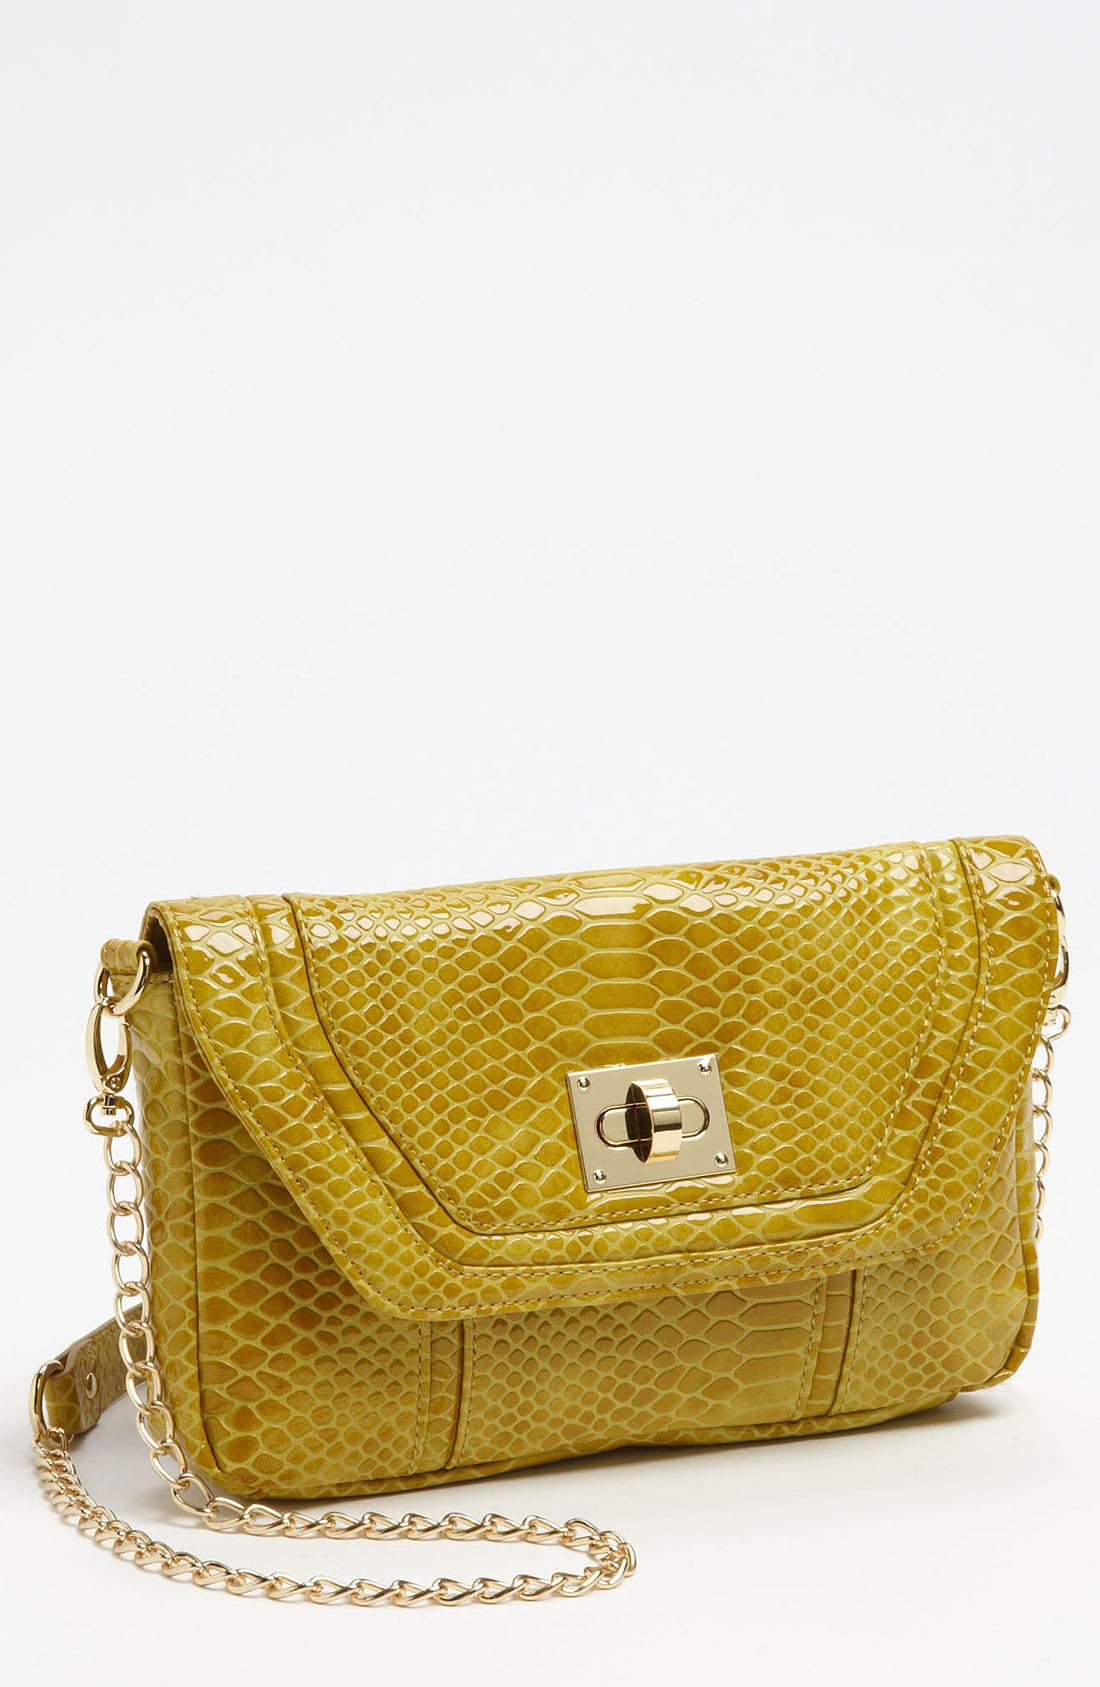 Alternate Image 1 Selected - Steven by Steve Madden 'Sugar' Snake Embossed Clutch